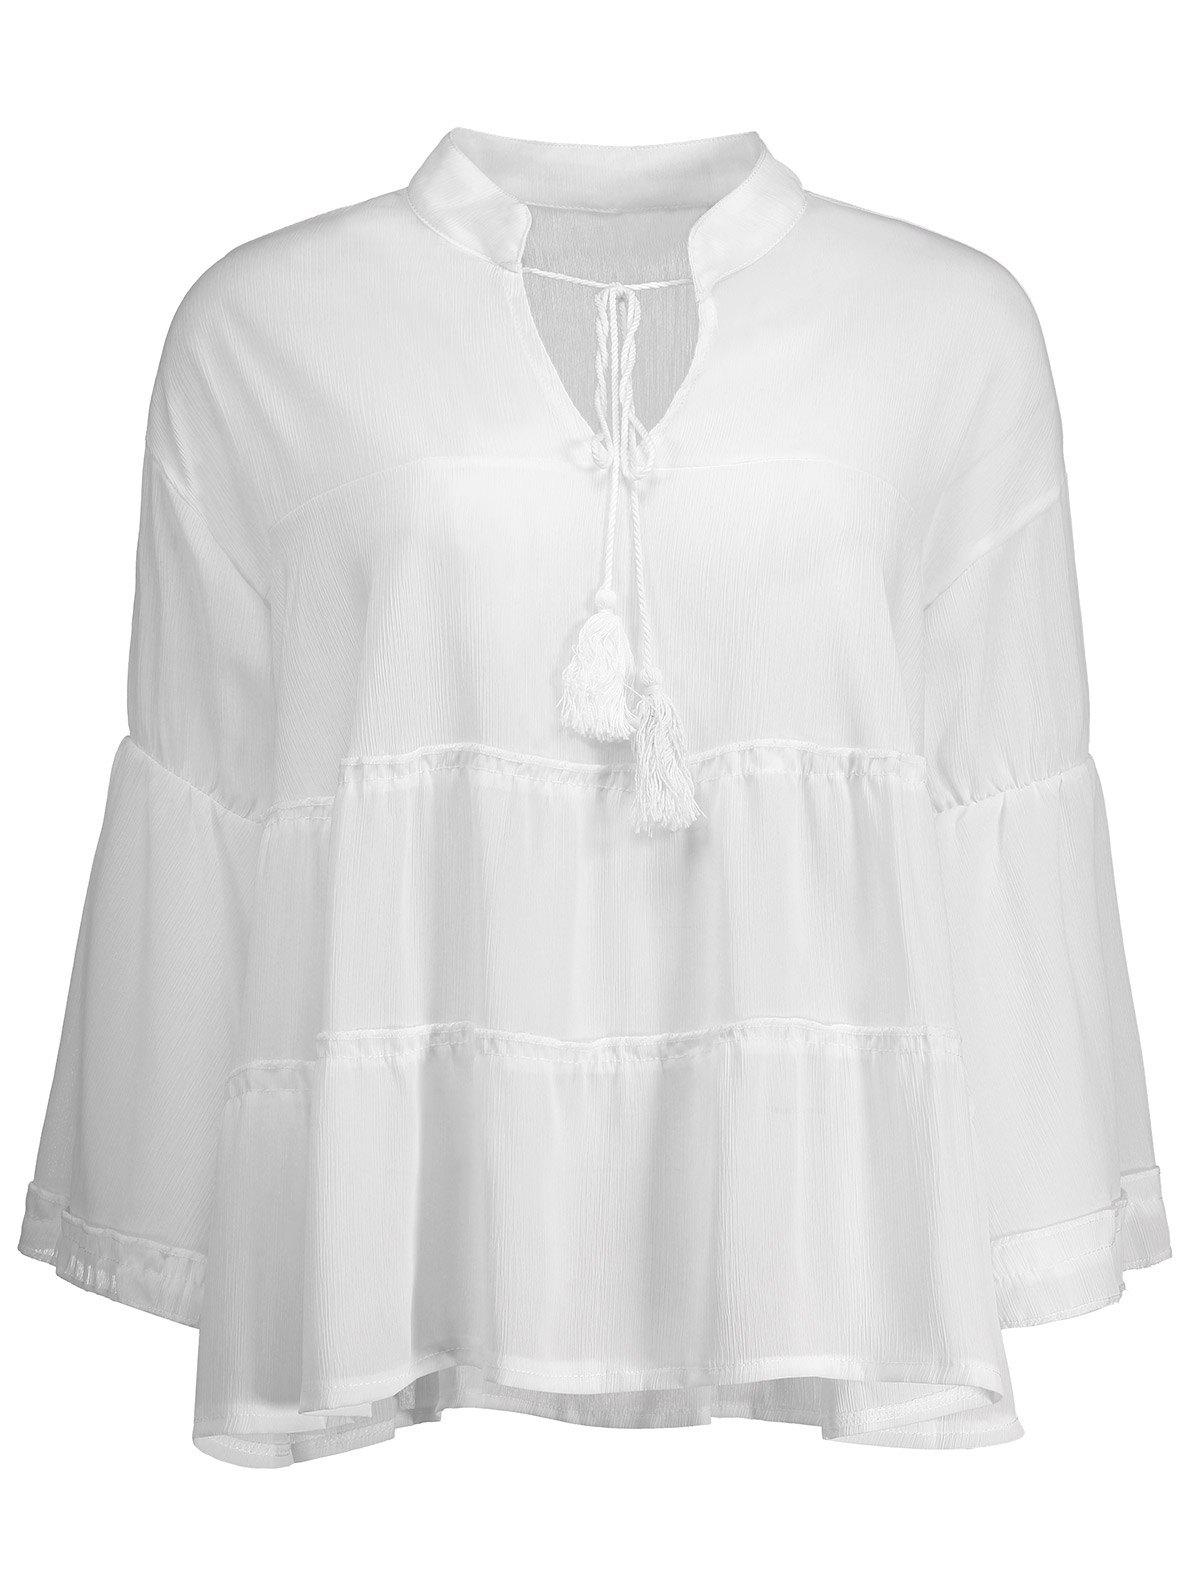 Manches cloche Tassel Plus Size Top - Blanc 3XL